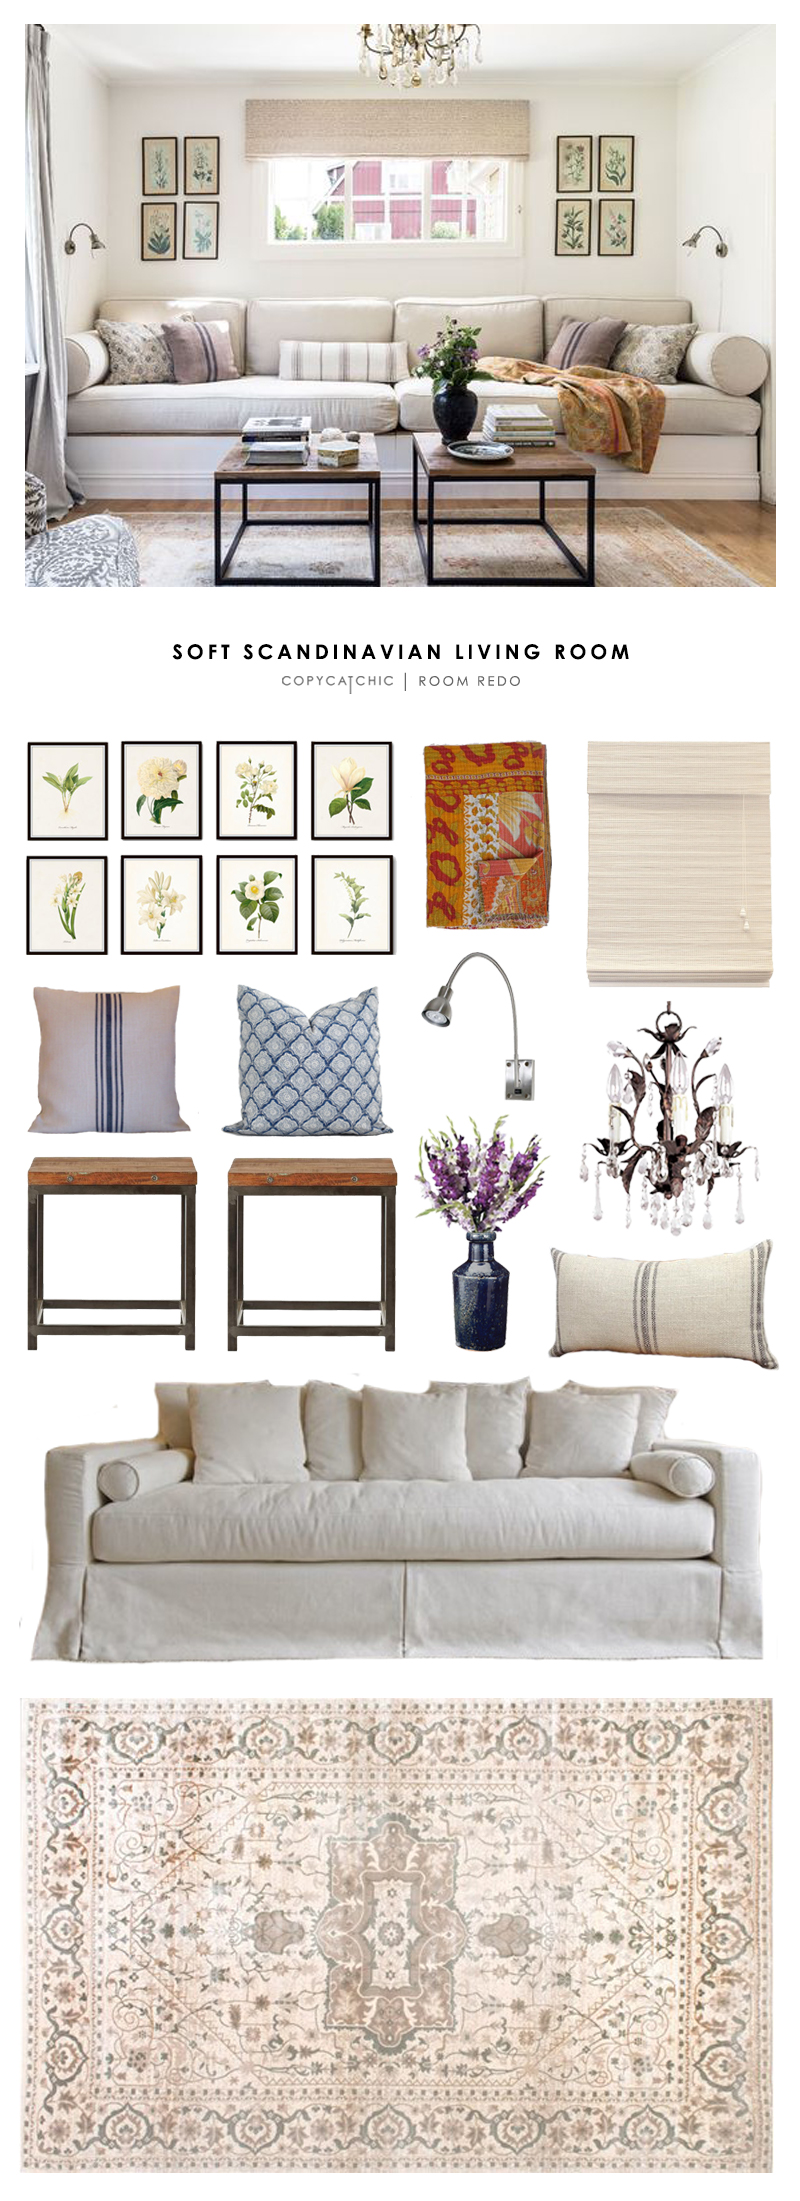 Copy cat chic room redo soft scandinavian living room for Living rooms for less